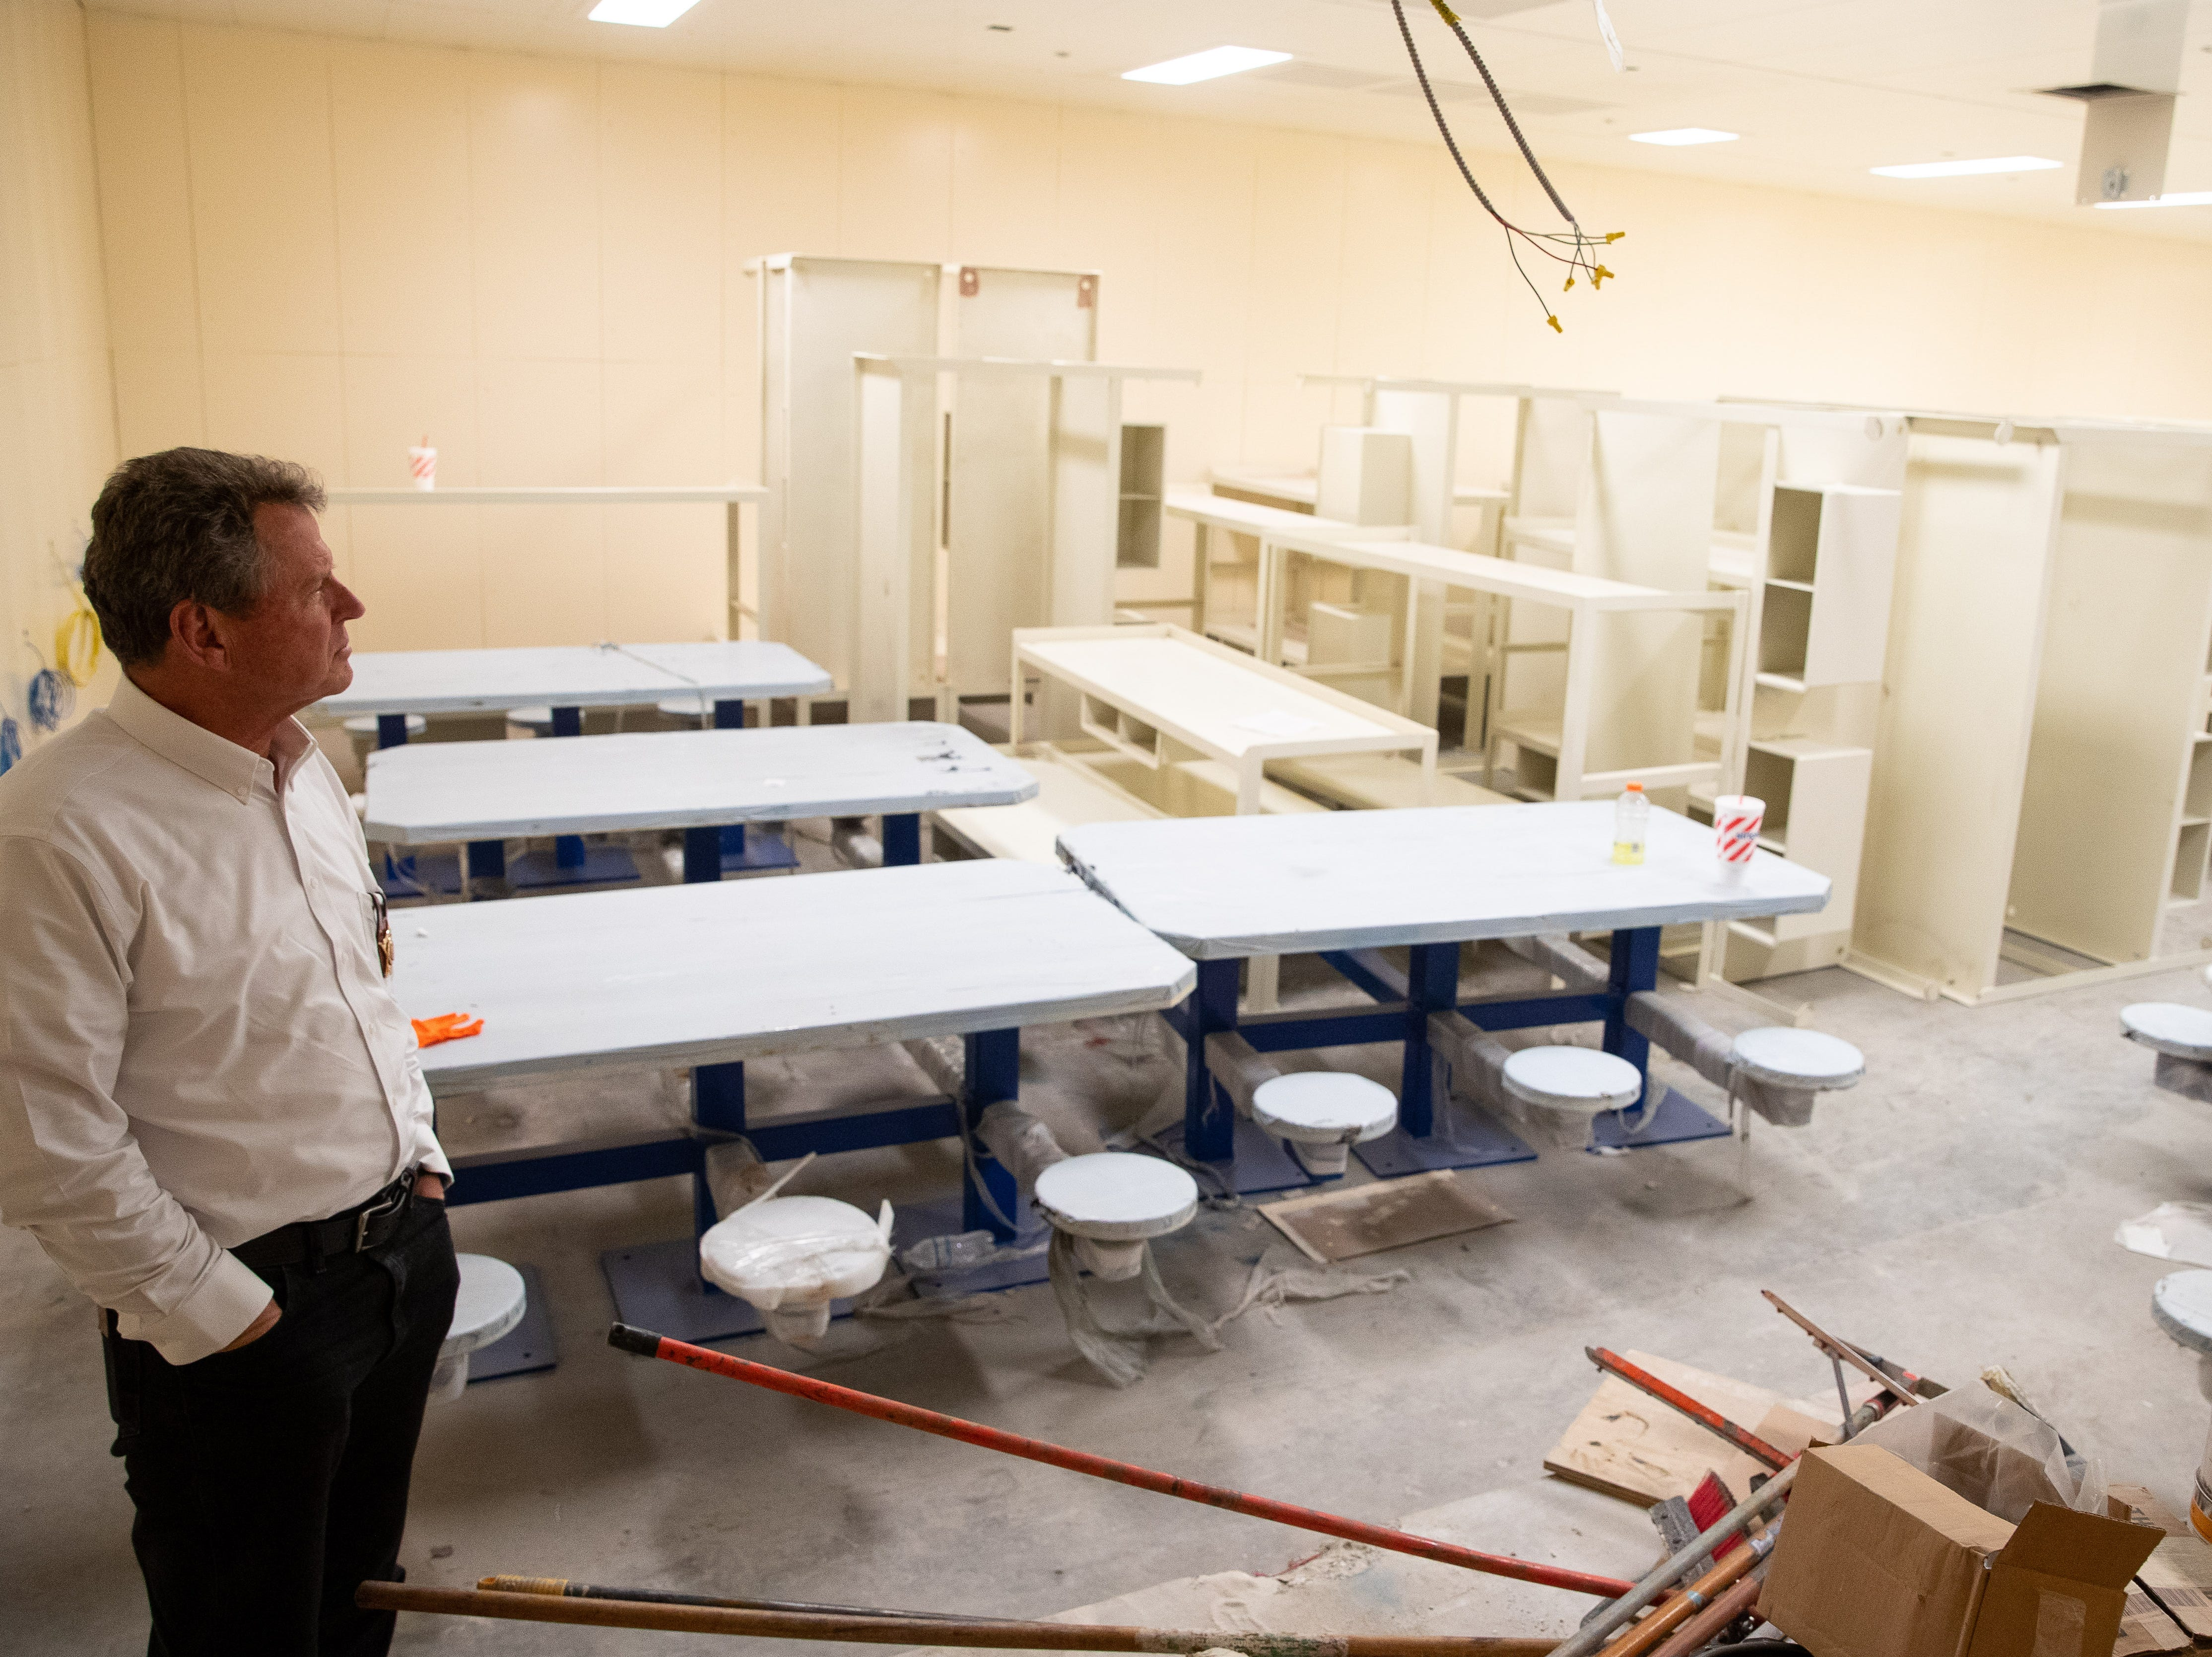 Nueces County Sheriff J.C. Hooper tours the Mckinzie jail annex renovation on Tuesday, Jan. 29, 2019.